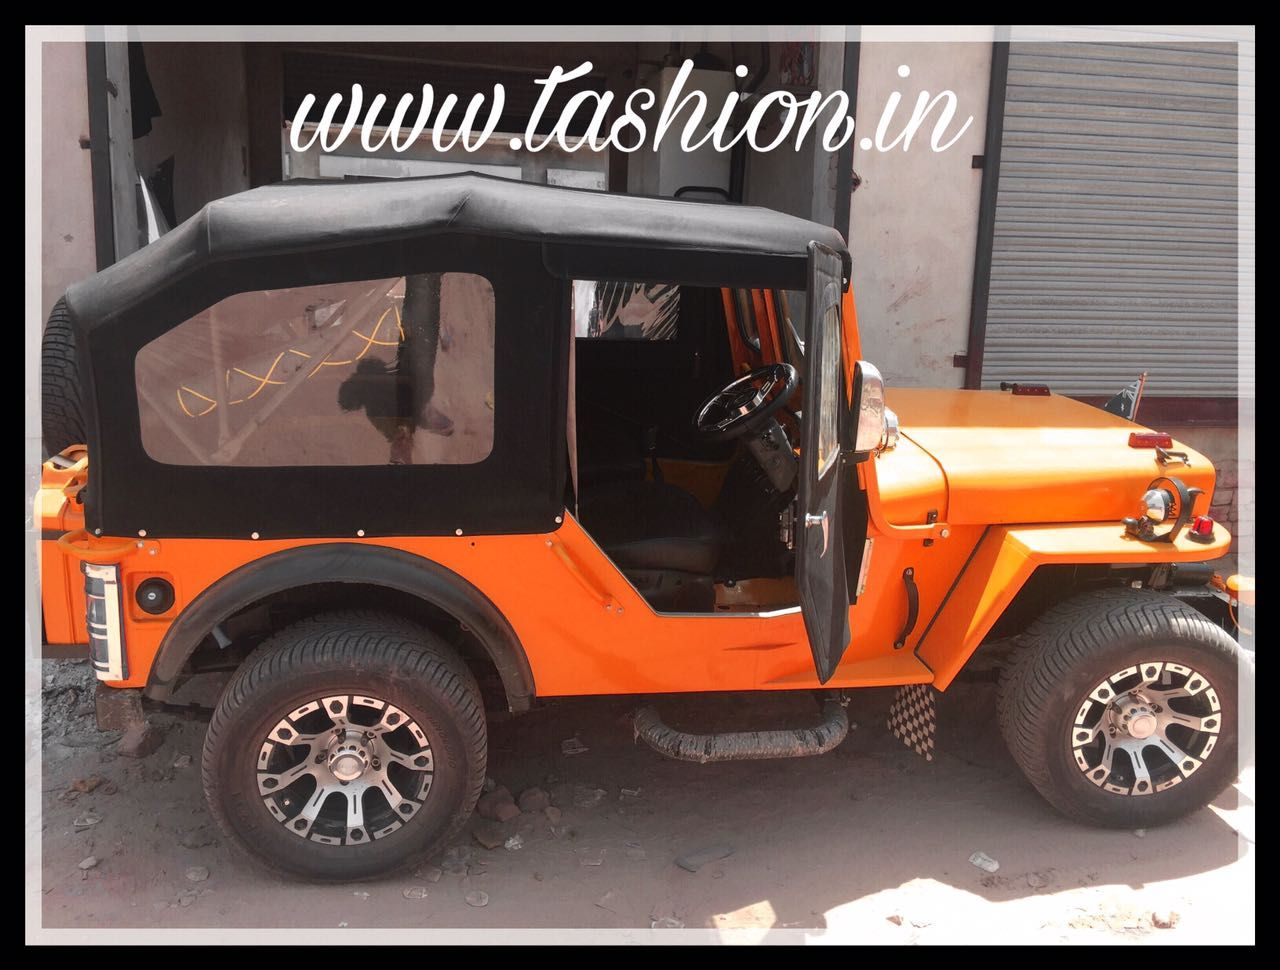 Modified Jeep In India Openmodifedjeep Customjeep Modifiedjeep In Bangalore Http Tashion In History Modified Jeep Jeep Prices Monster Trucks Jeep